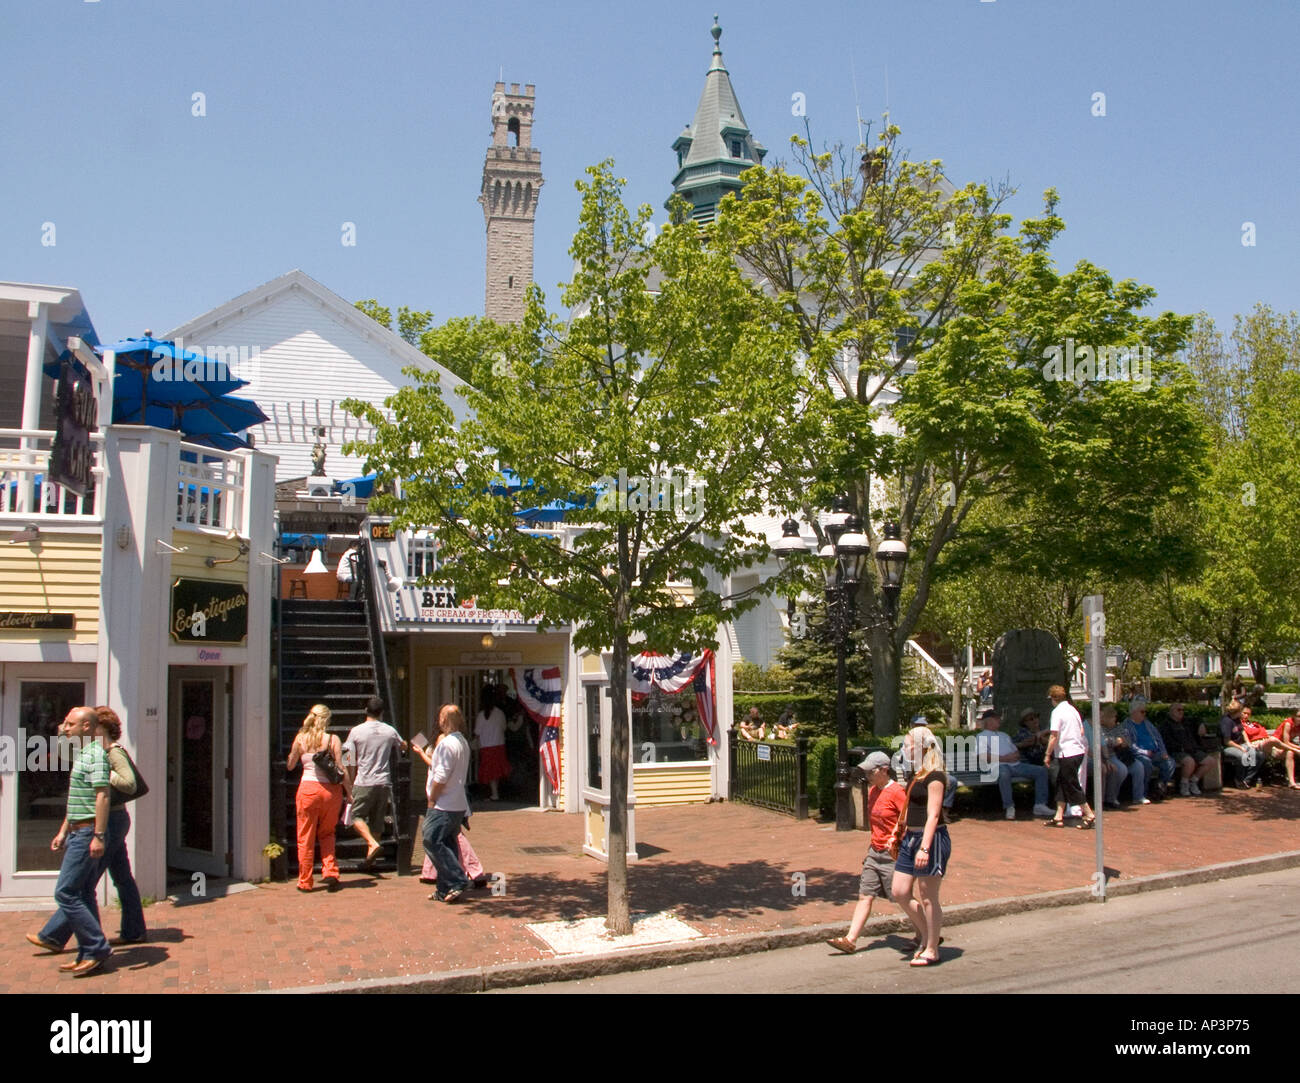 Shops and stores on commercial street Provincetown Massachussetts USA - Stock Image